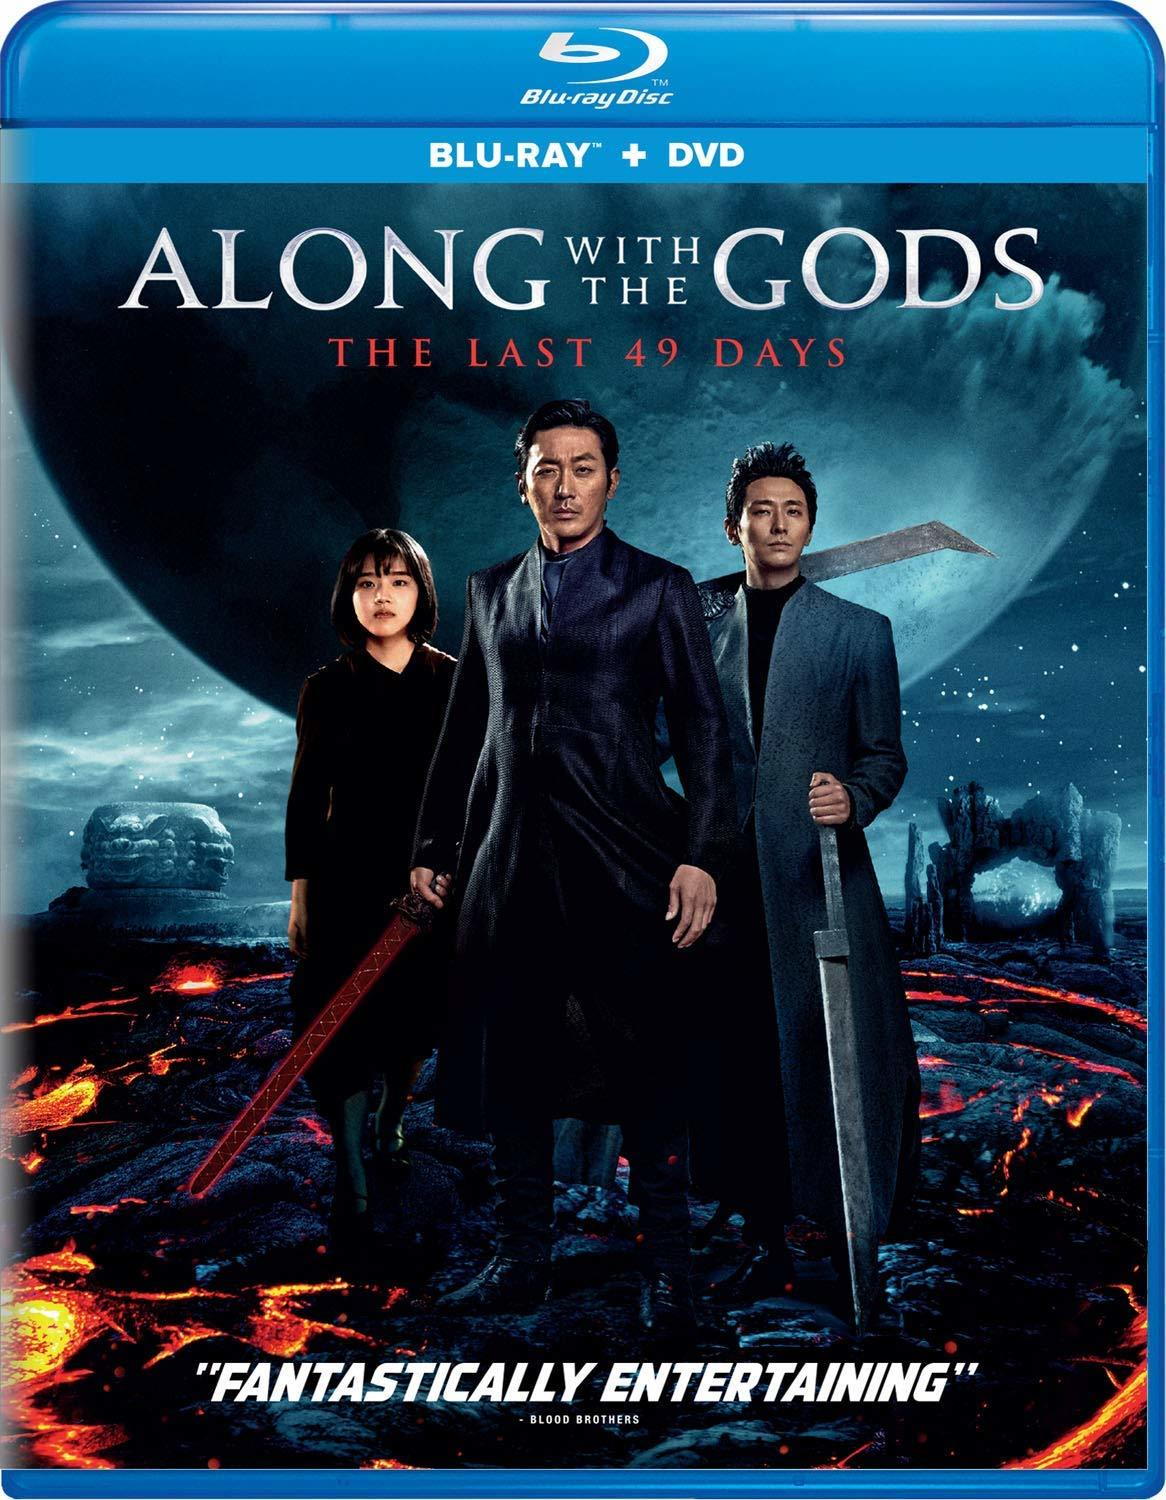 Along with the Gods: The Last 49 Days (Blu-ray)(Region Free)